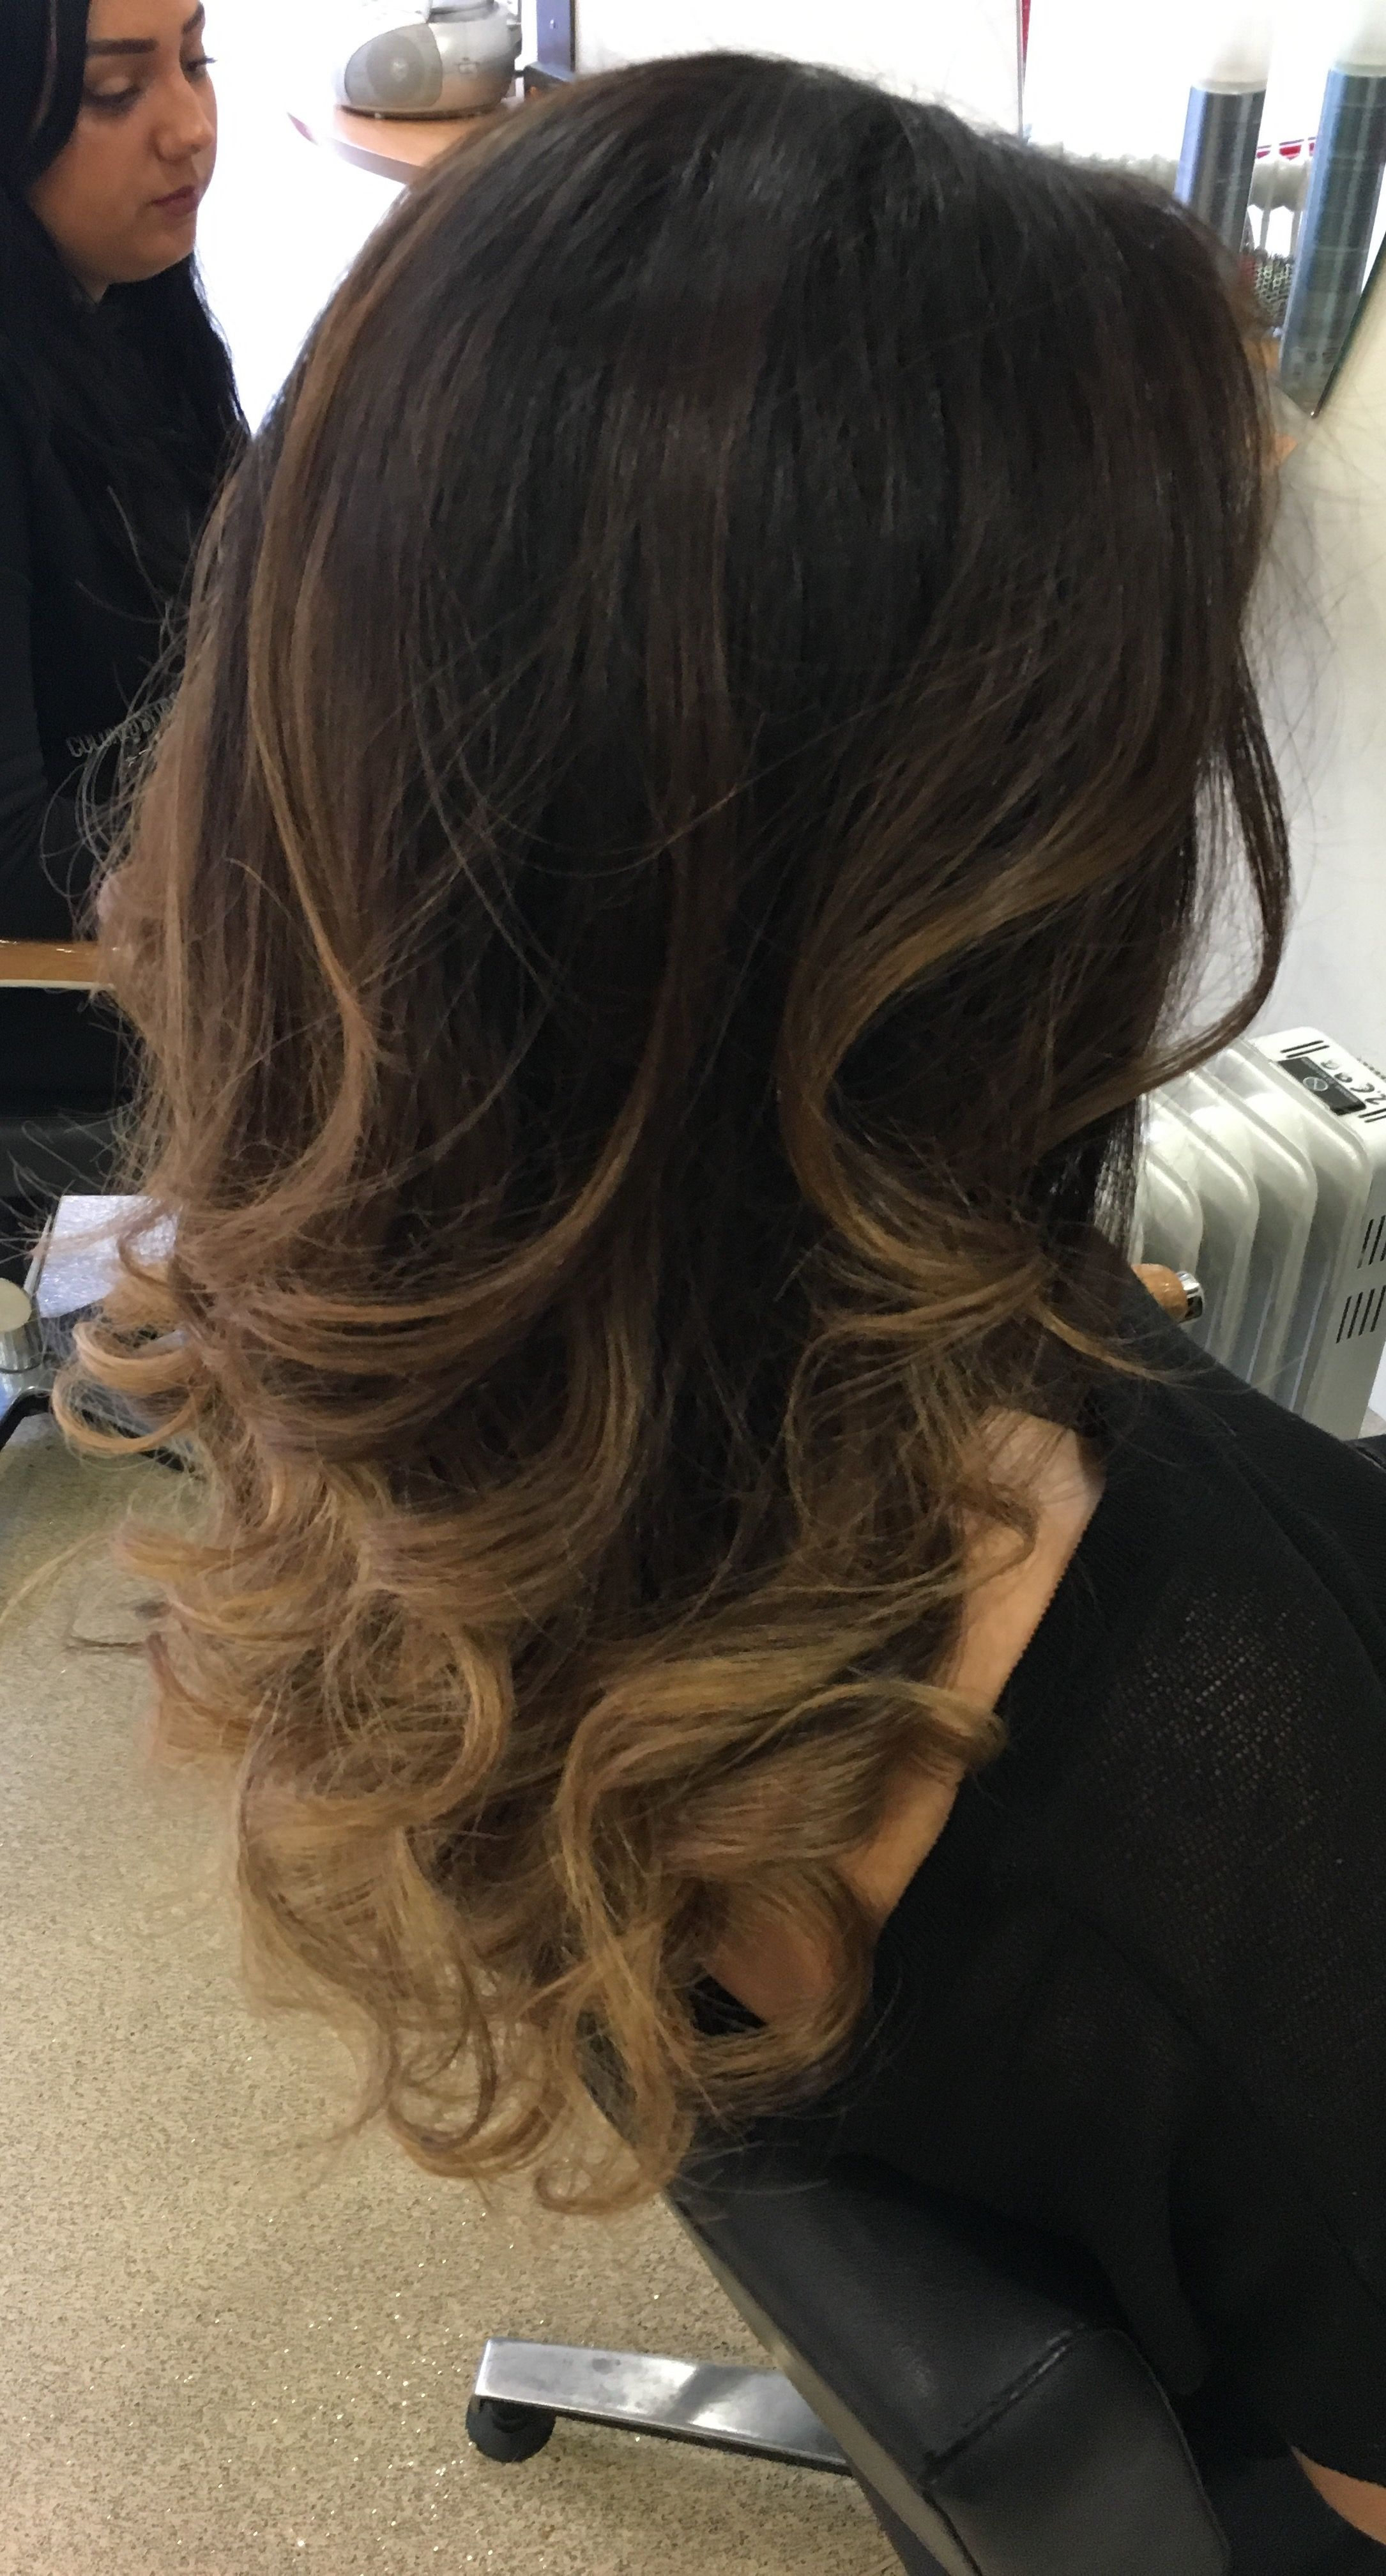 Curly Blowdry Curly Blowdry Long Hair Blow Dry Hair Curly Blowdry